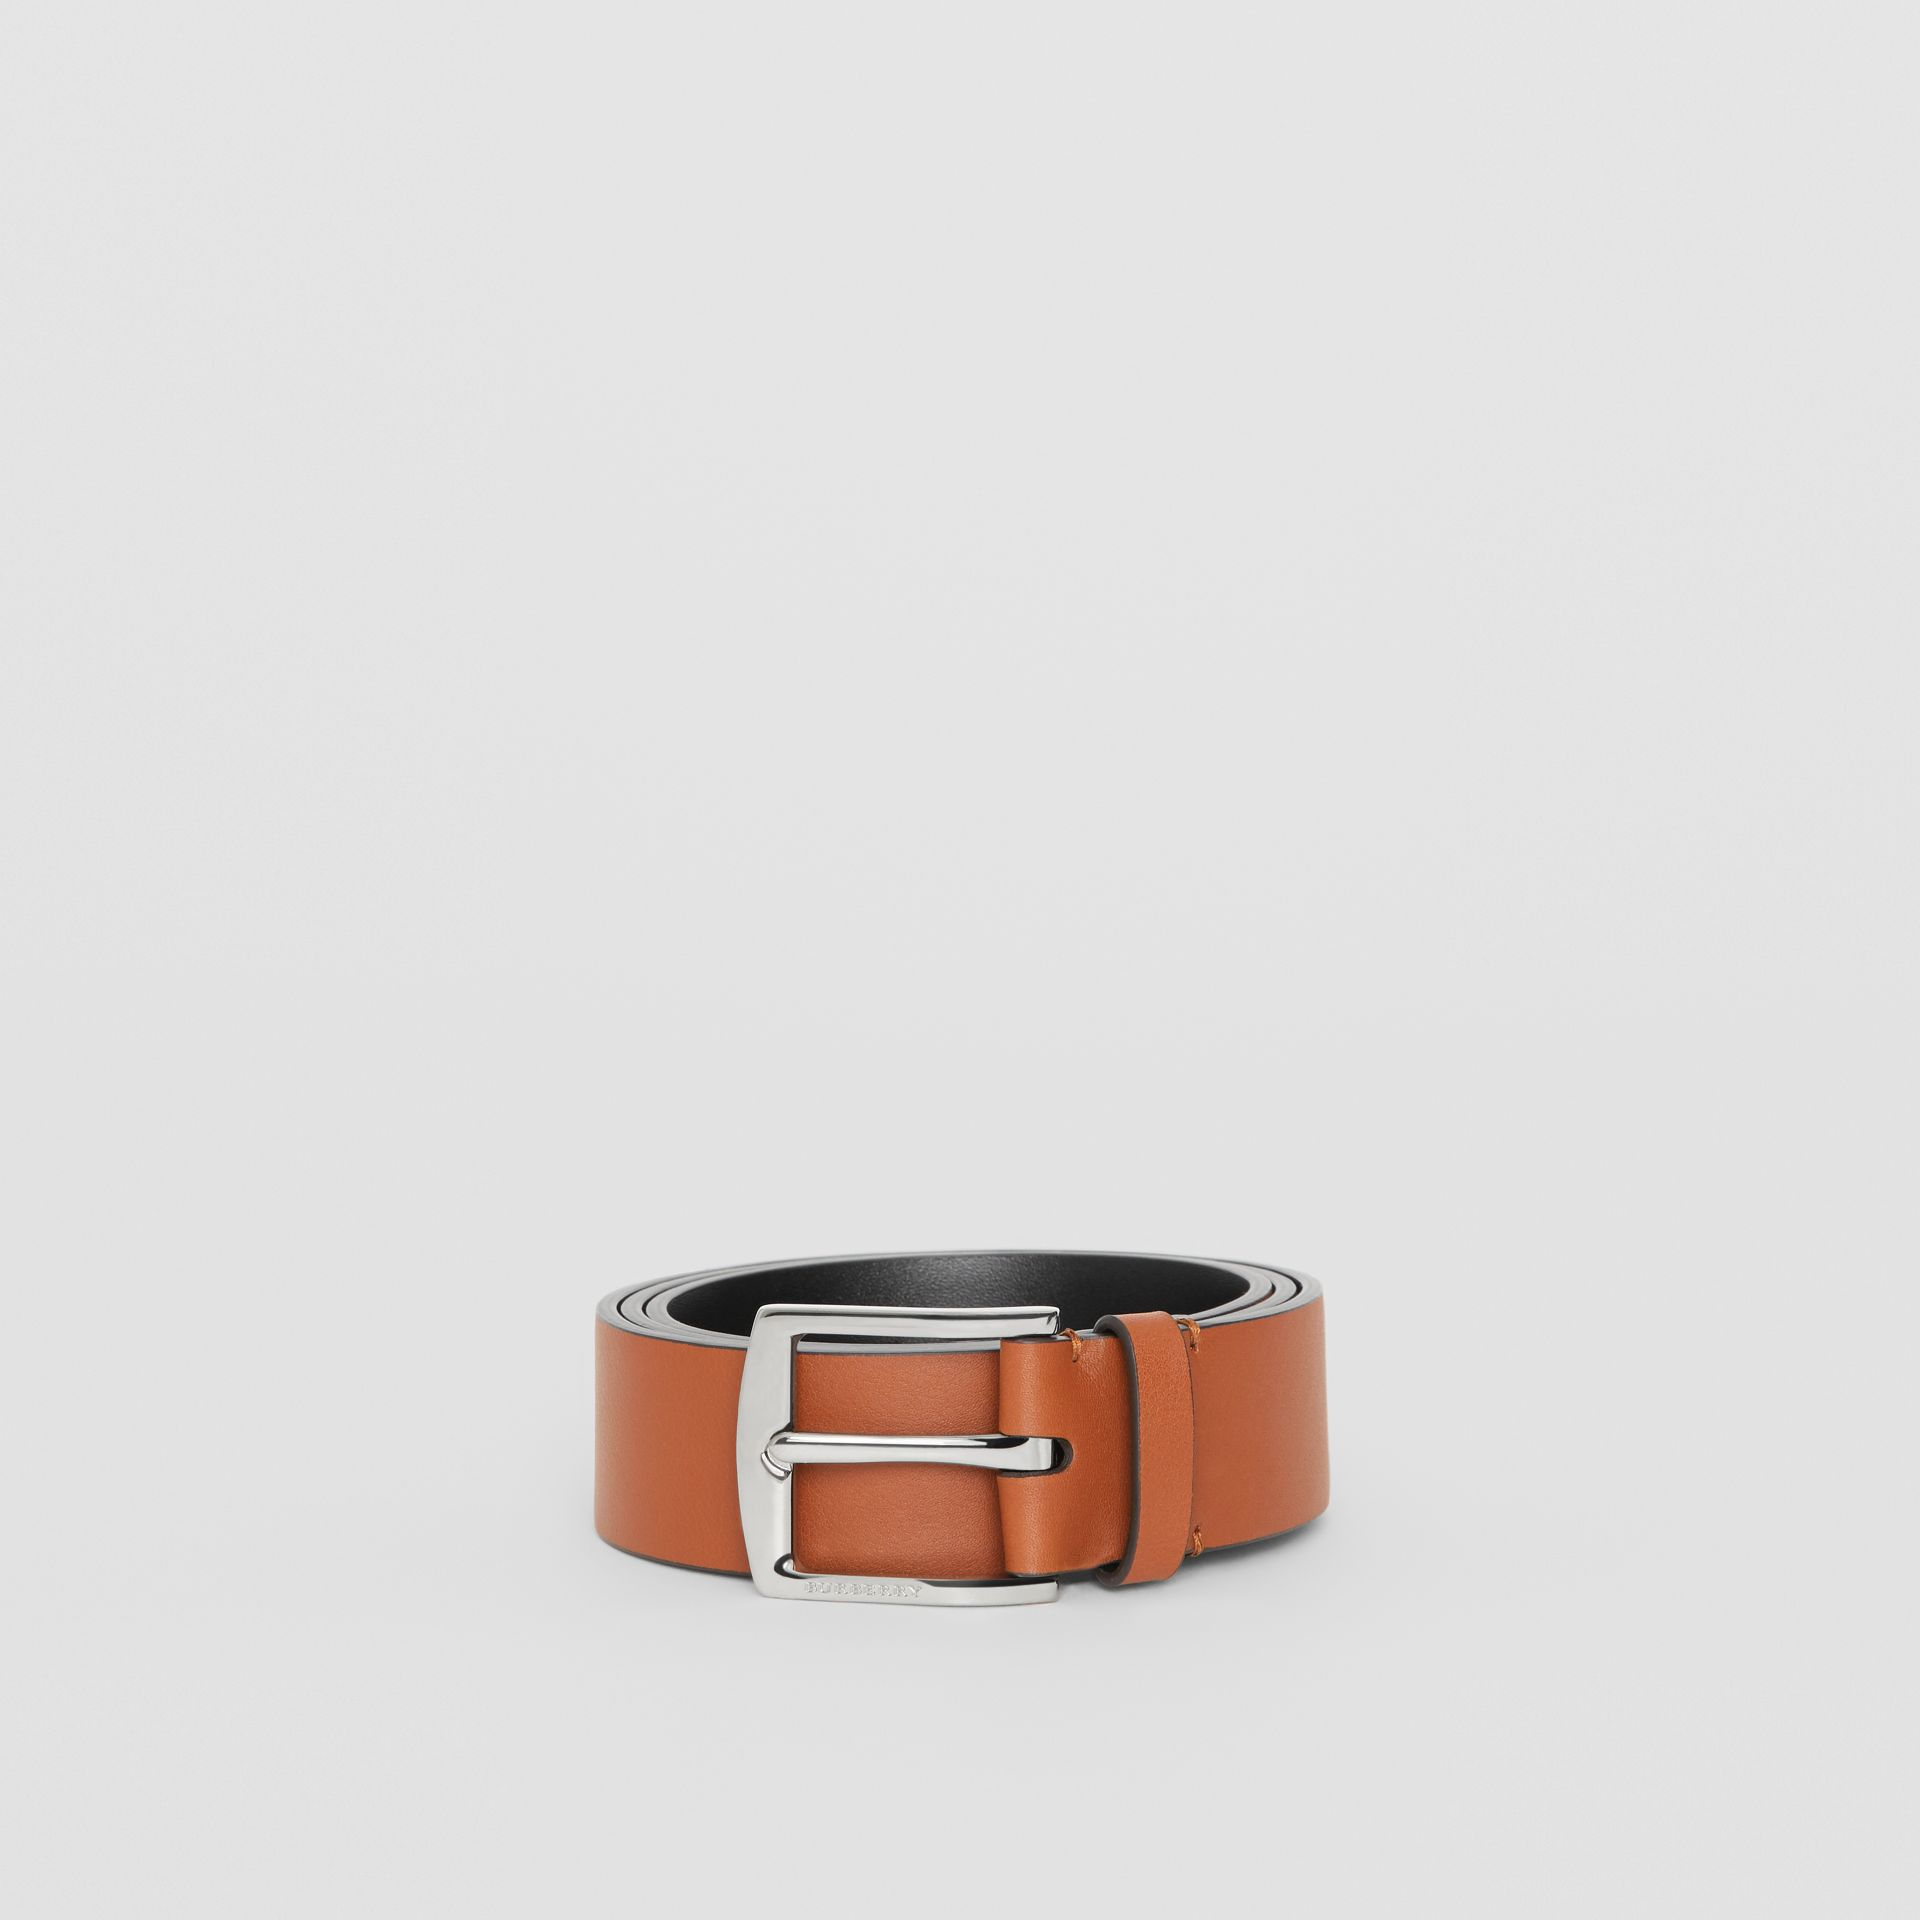 Embossed Crest Leather Belt in Chestnut Brown - Men | Burberry United States - gallery image 3